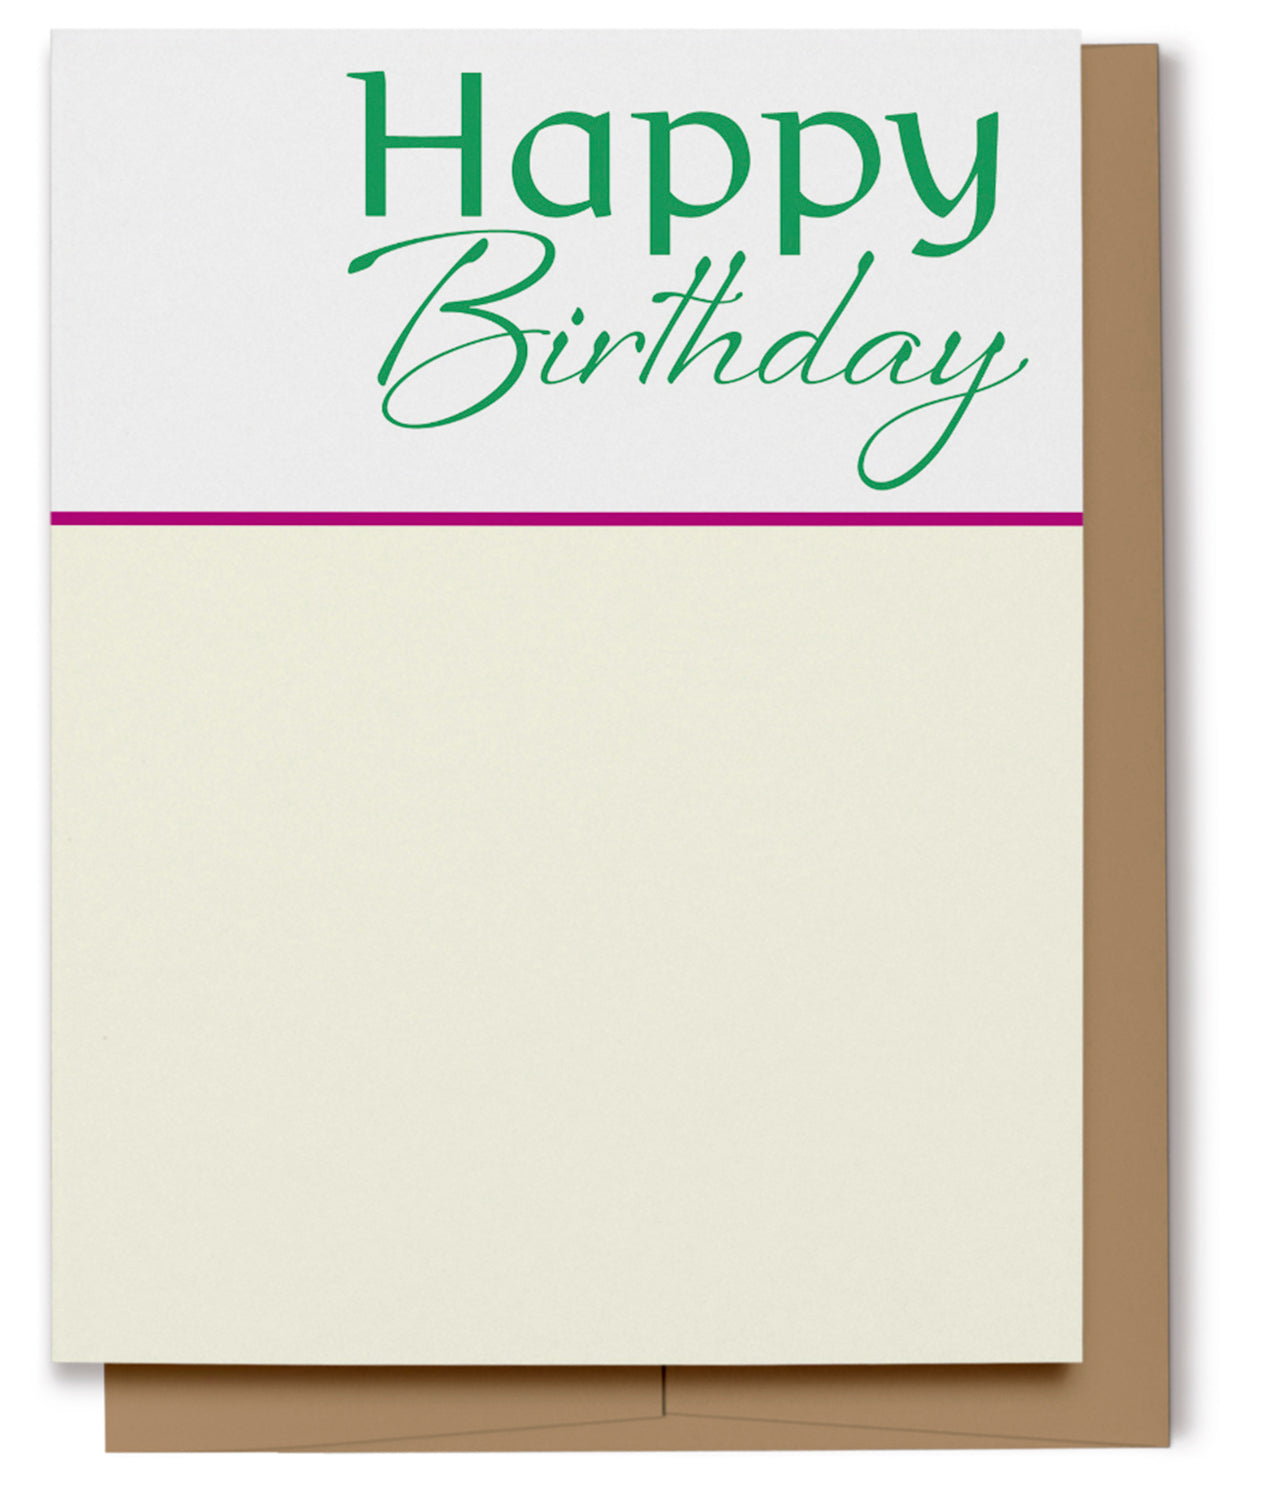 Happy Birthday Card - Green & Cream (100% Recycled)